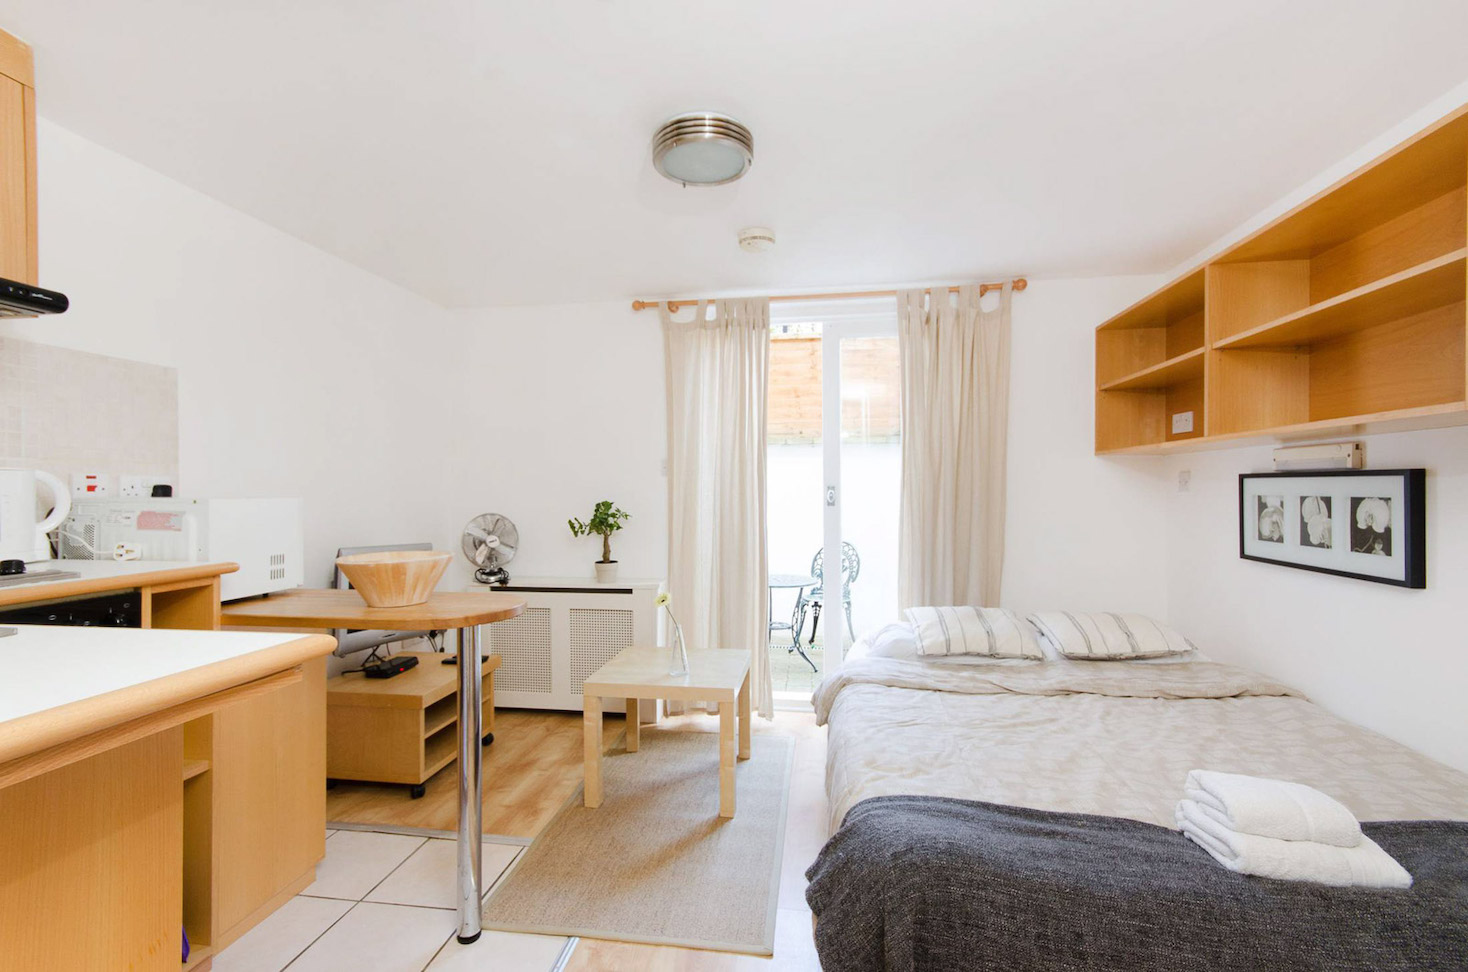 A Guide to Private Student Accommodation in London - Types of Accommodation